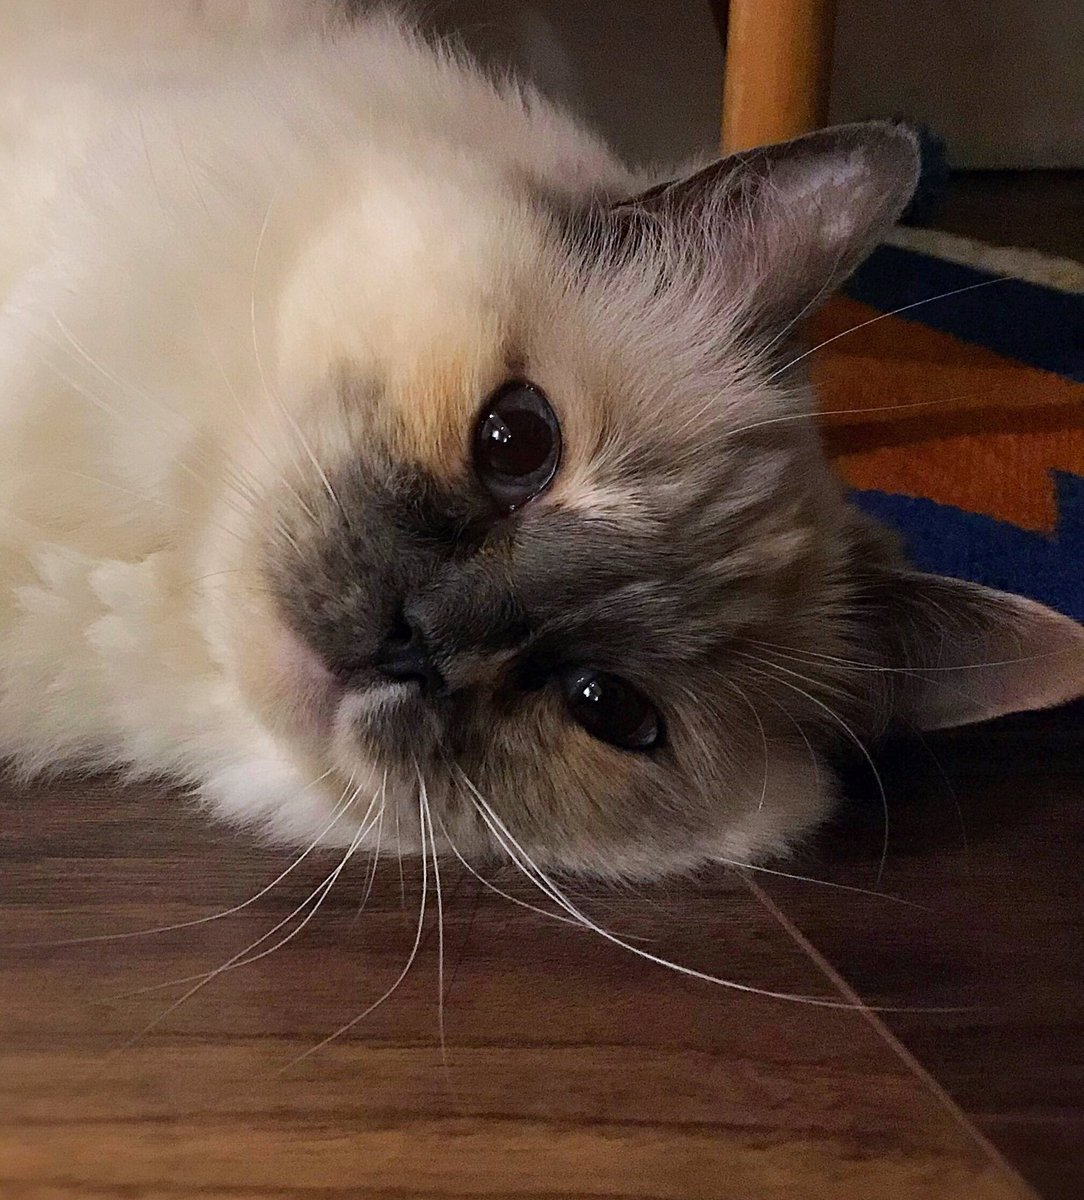 When will it ever stop raining?! ☔️🙀☔️ Another indoor sports day - nefur mind...keep going! 🌈😻🌈#whiskerswednesday #WednesdayWisdom